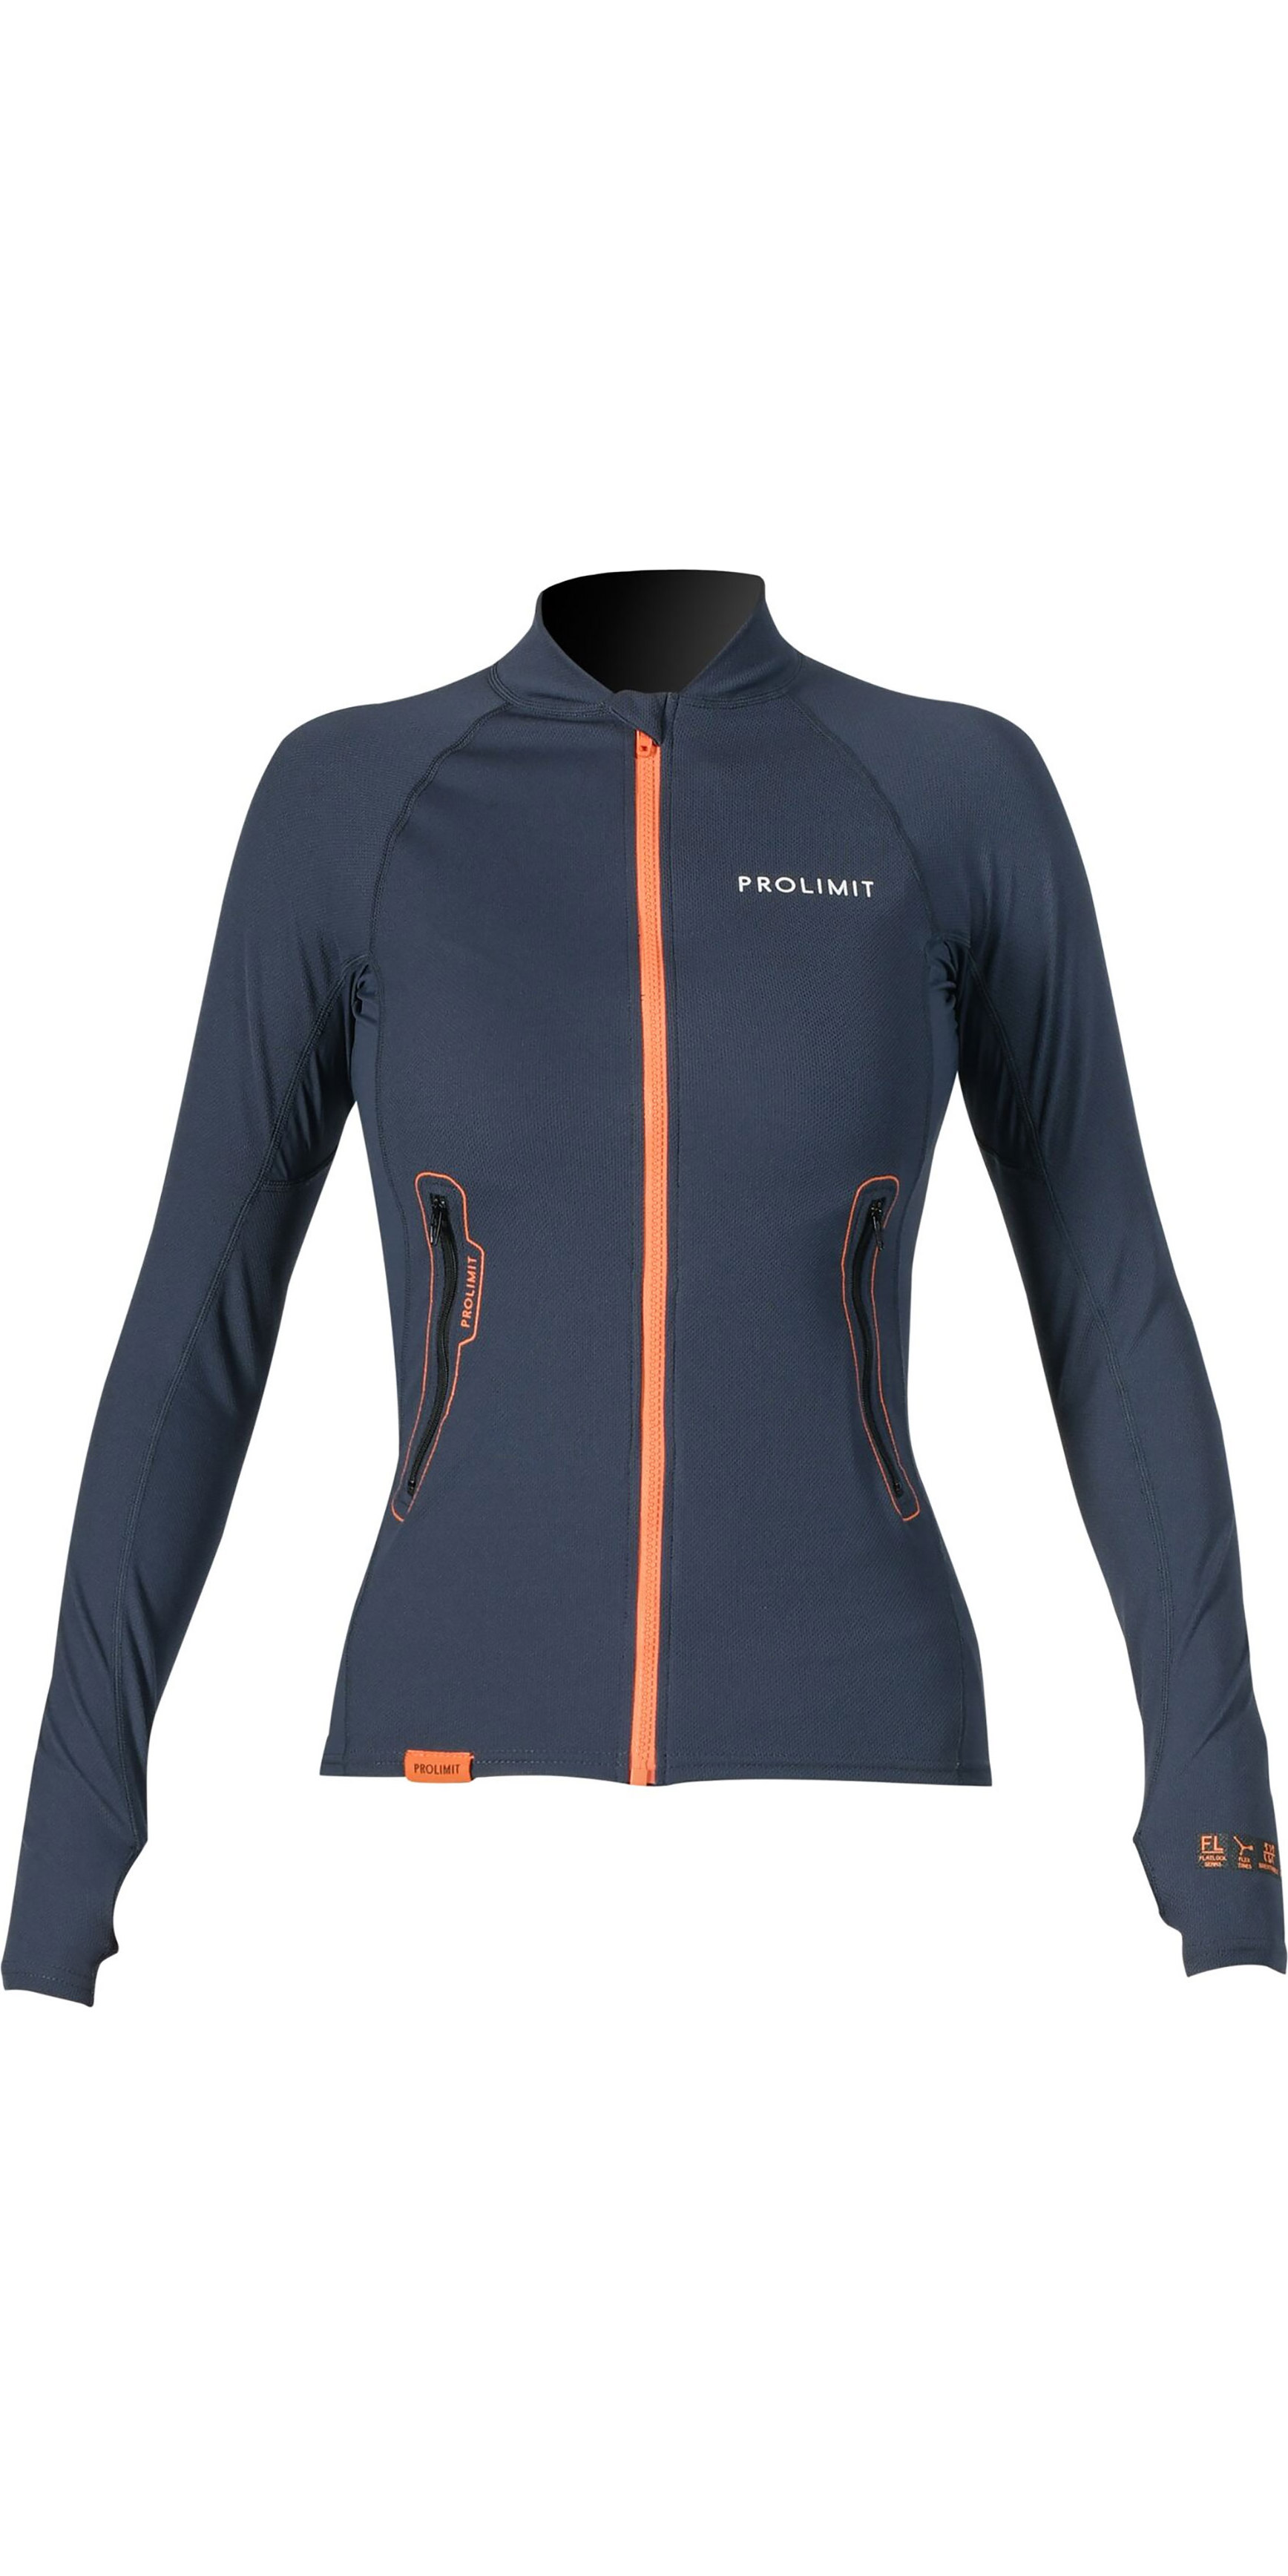 2019 Prolimit Womens Loosefit Quick Dry SUP Top Slate / Orange  84700